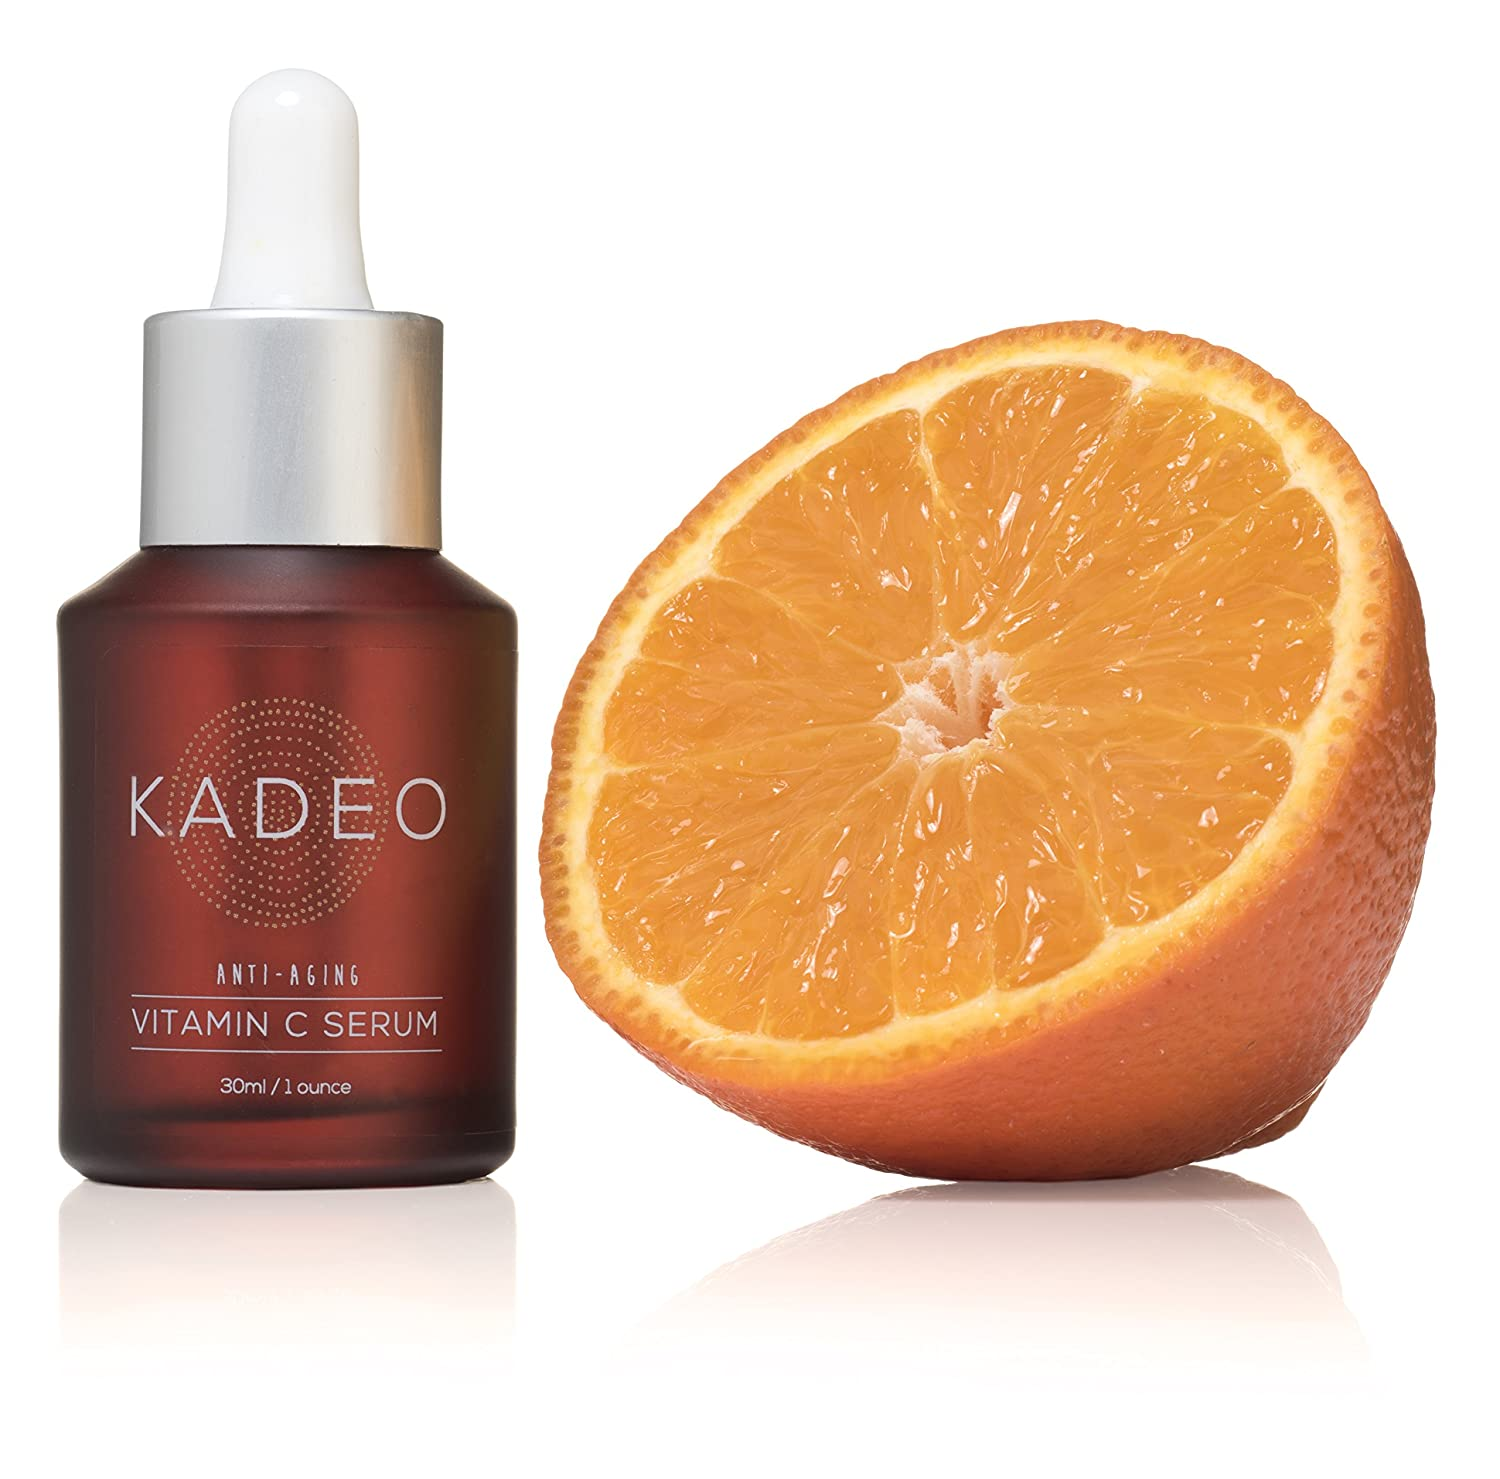 Amazon.com: kadeo Anti-Edad Vitamin C Serum con ácido ...